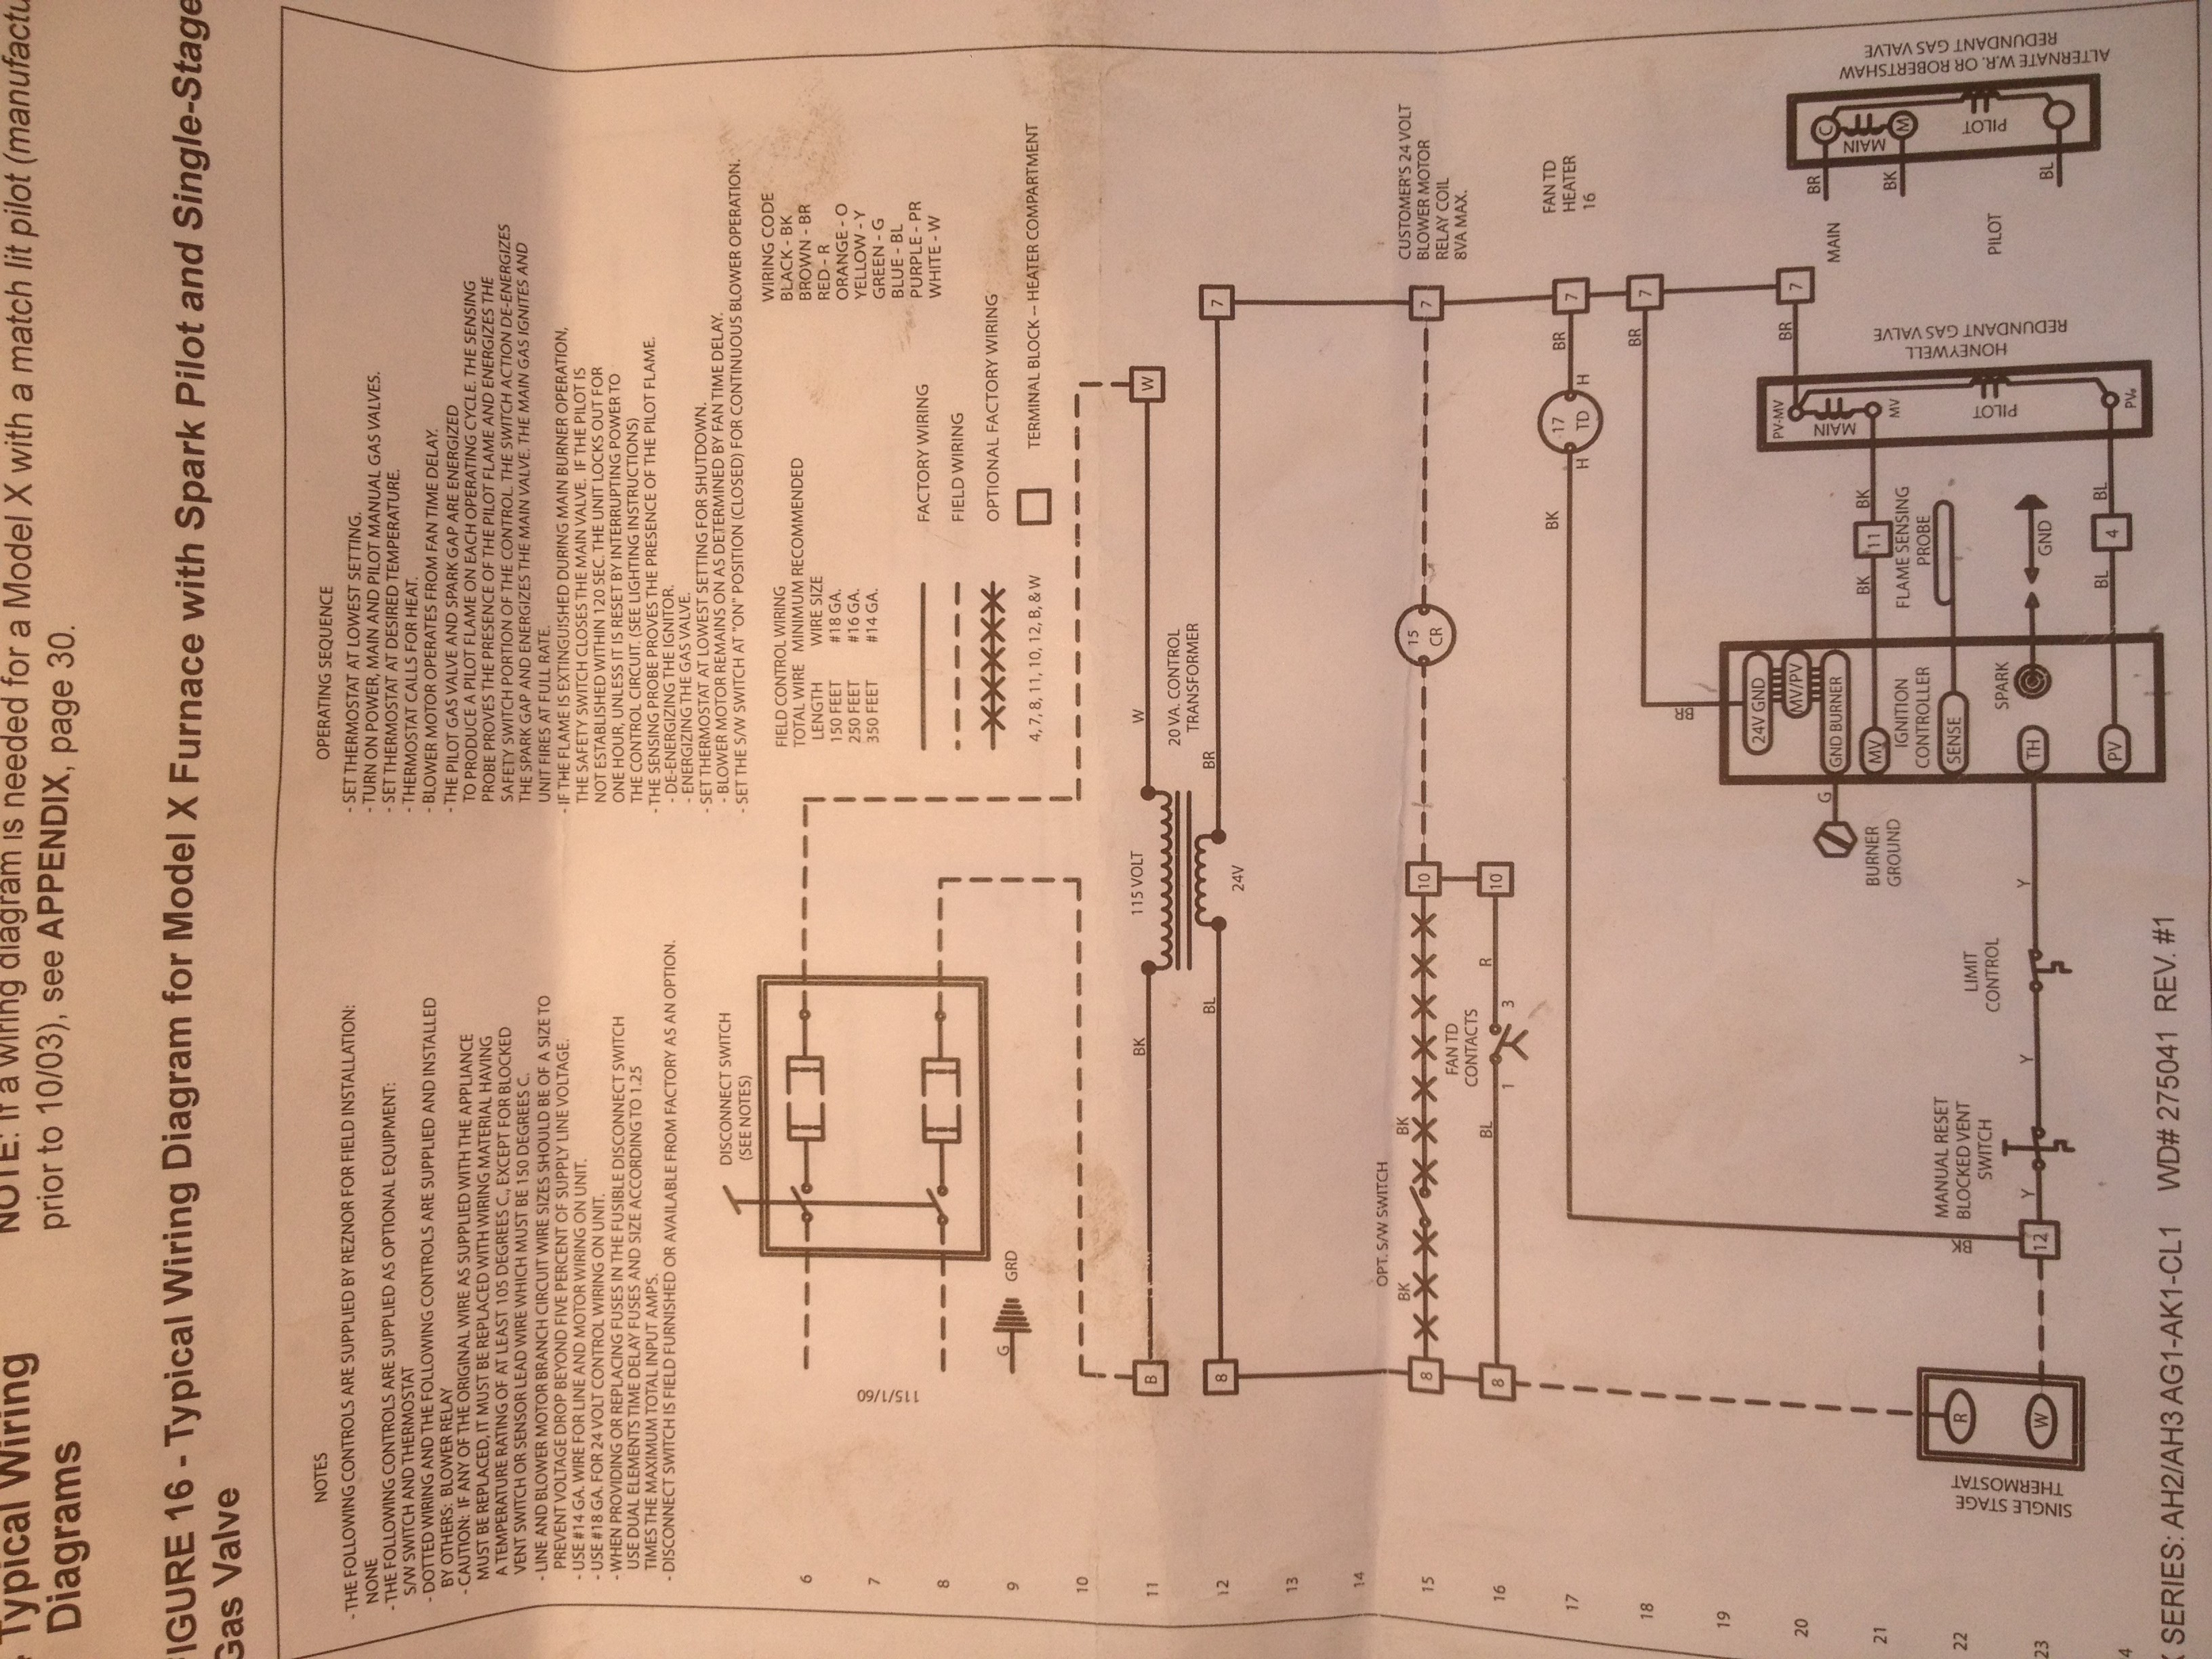 Reznor Gas Furnace Wiring - Wiring Diagrams Hubs - Reznor Heater Wiring Diagram